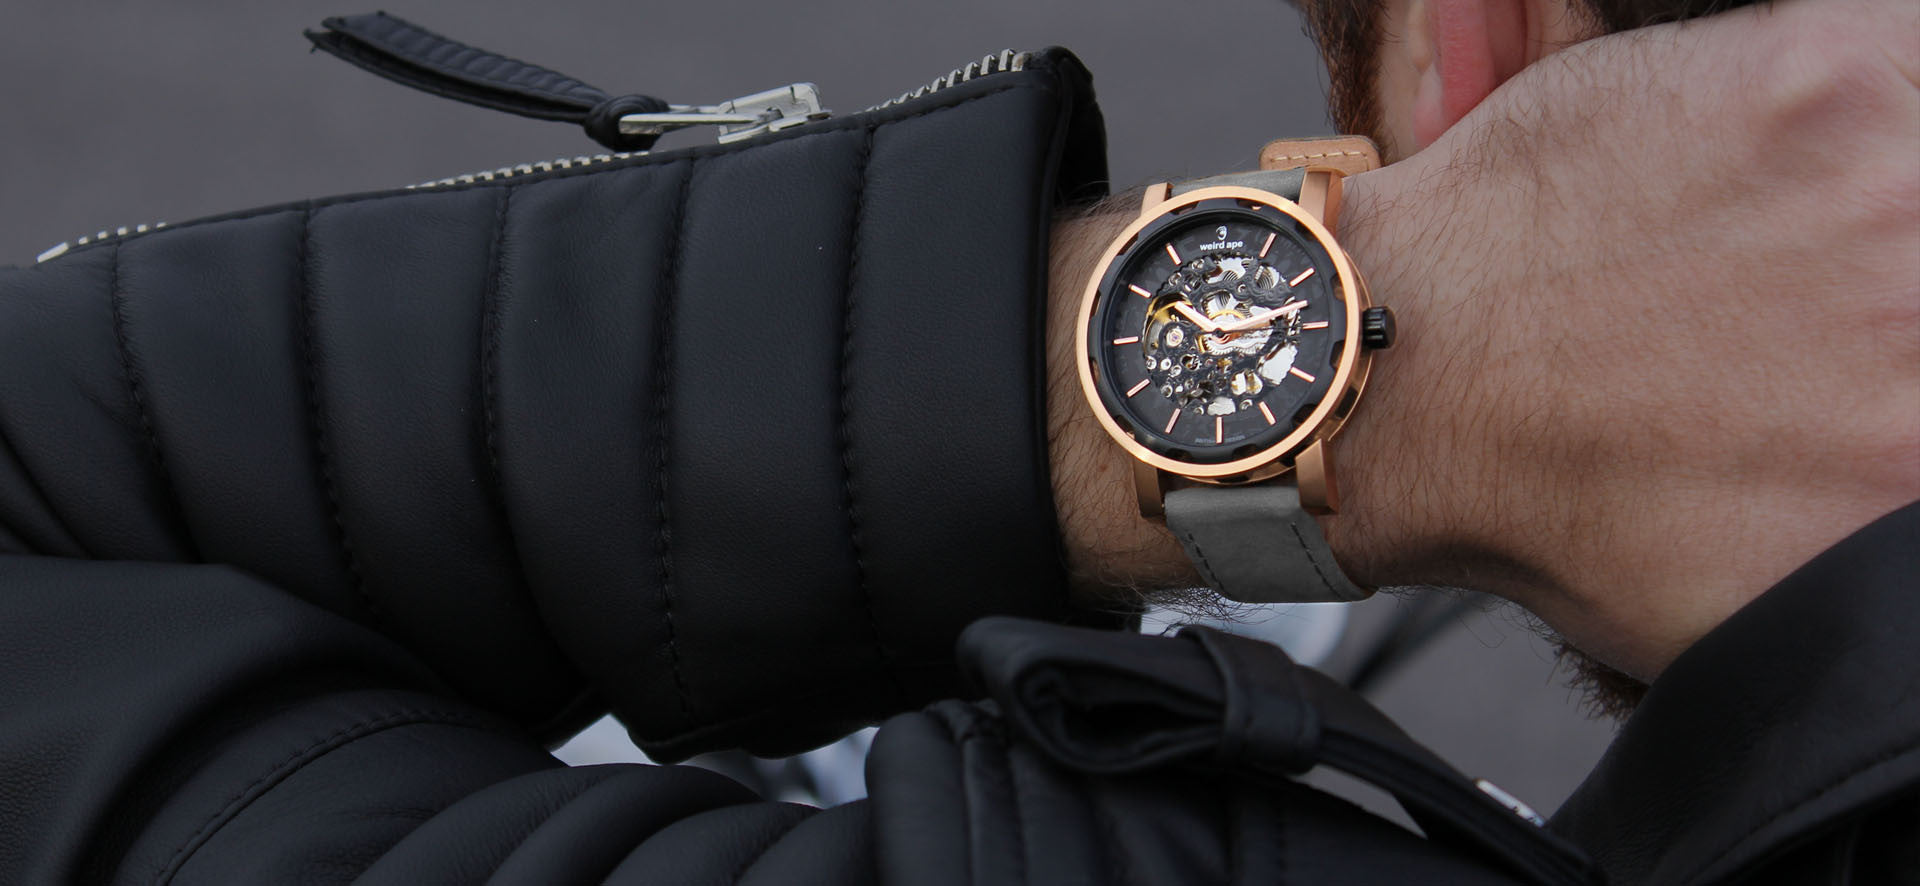 Rose gold skeleton watch with a grey strap in a lifestyle image